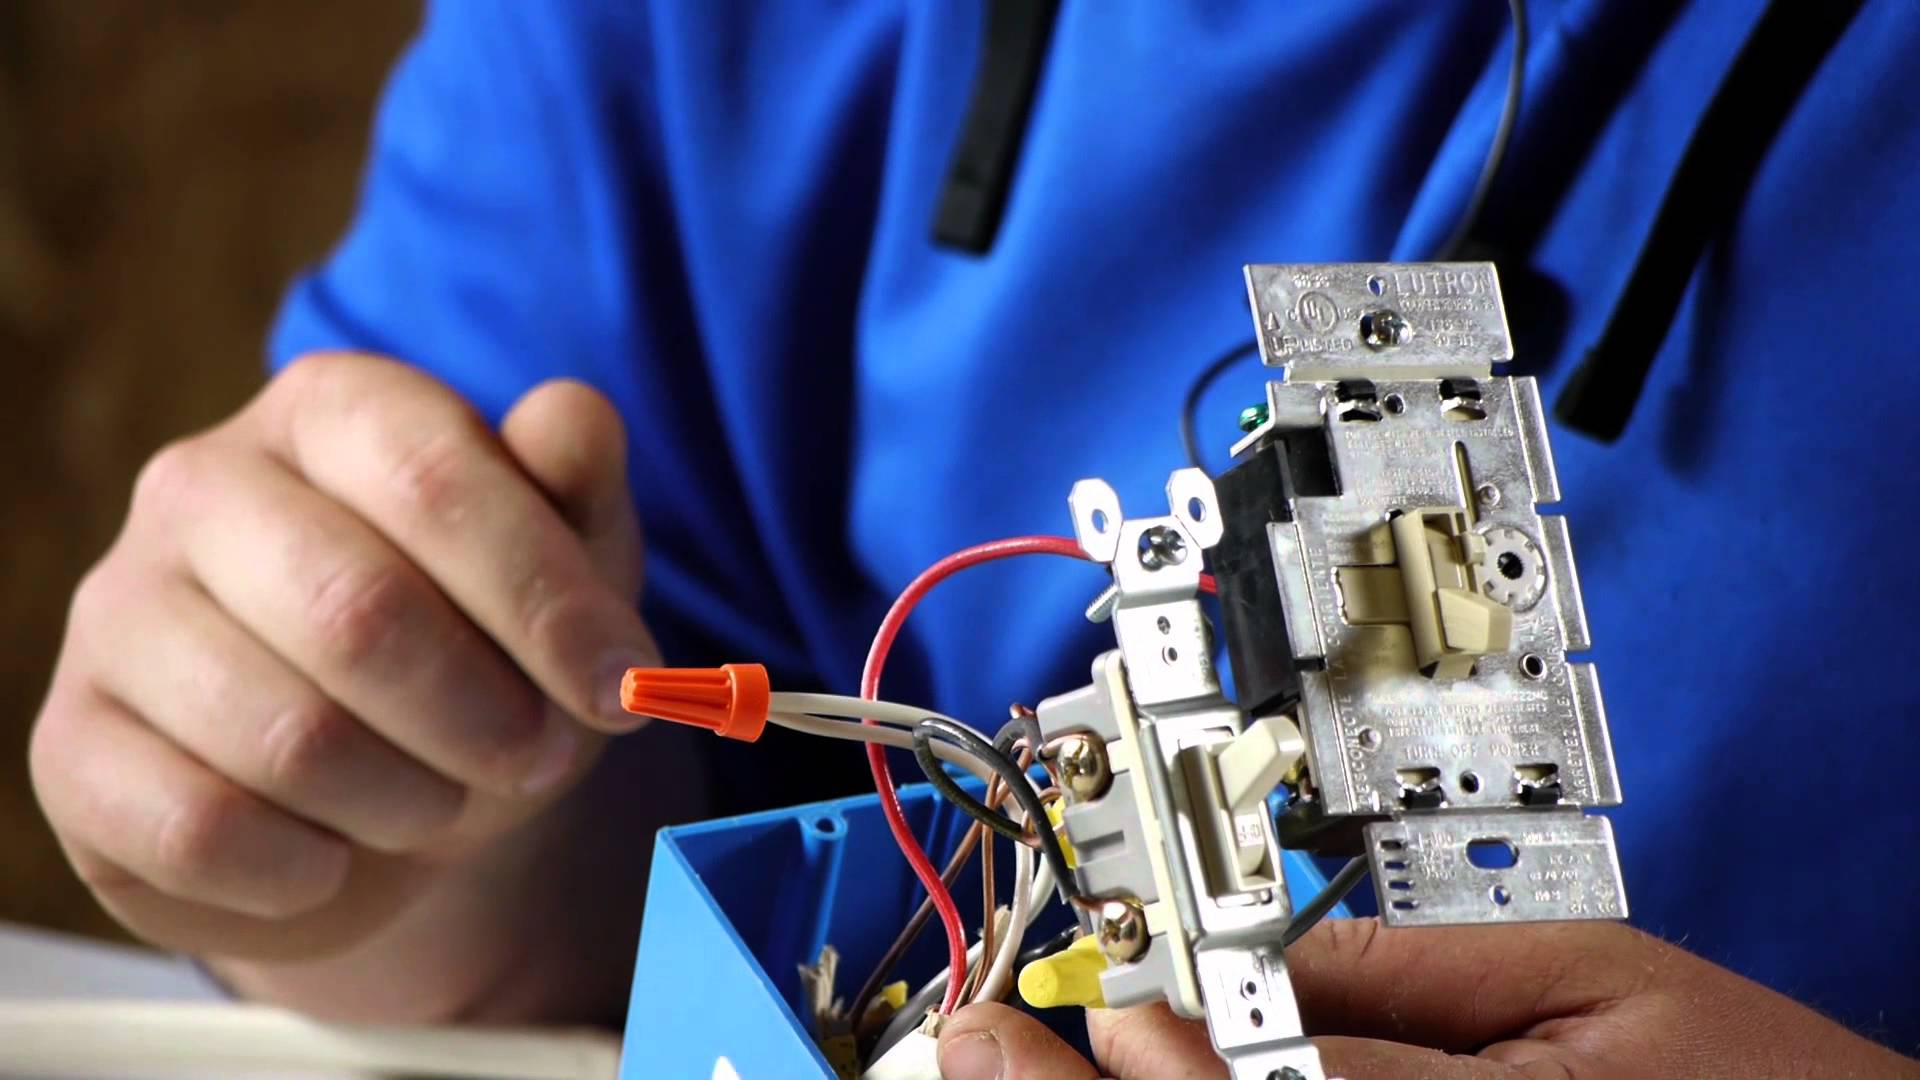 Astounding How To Wire A Light Switch Smartthings Wiring Cloud Xortanetembamohammedshrineorg